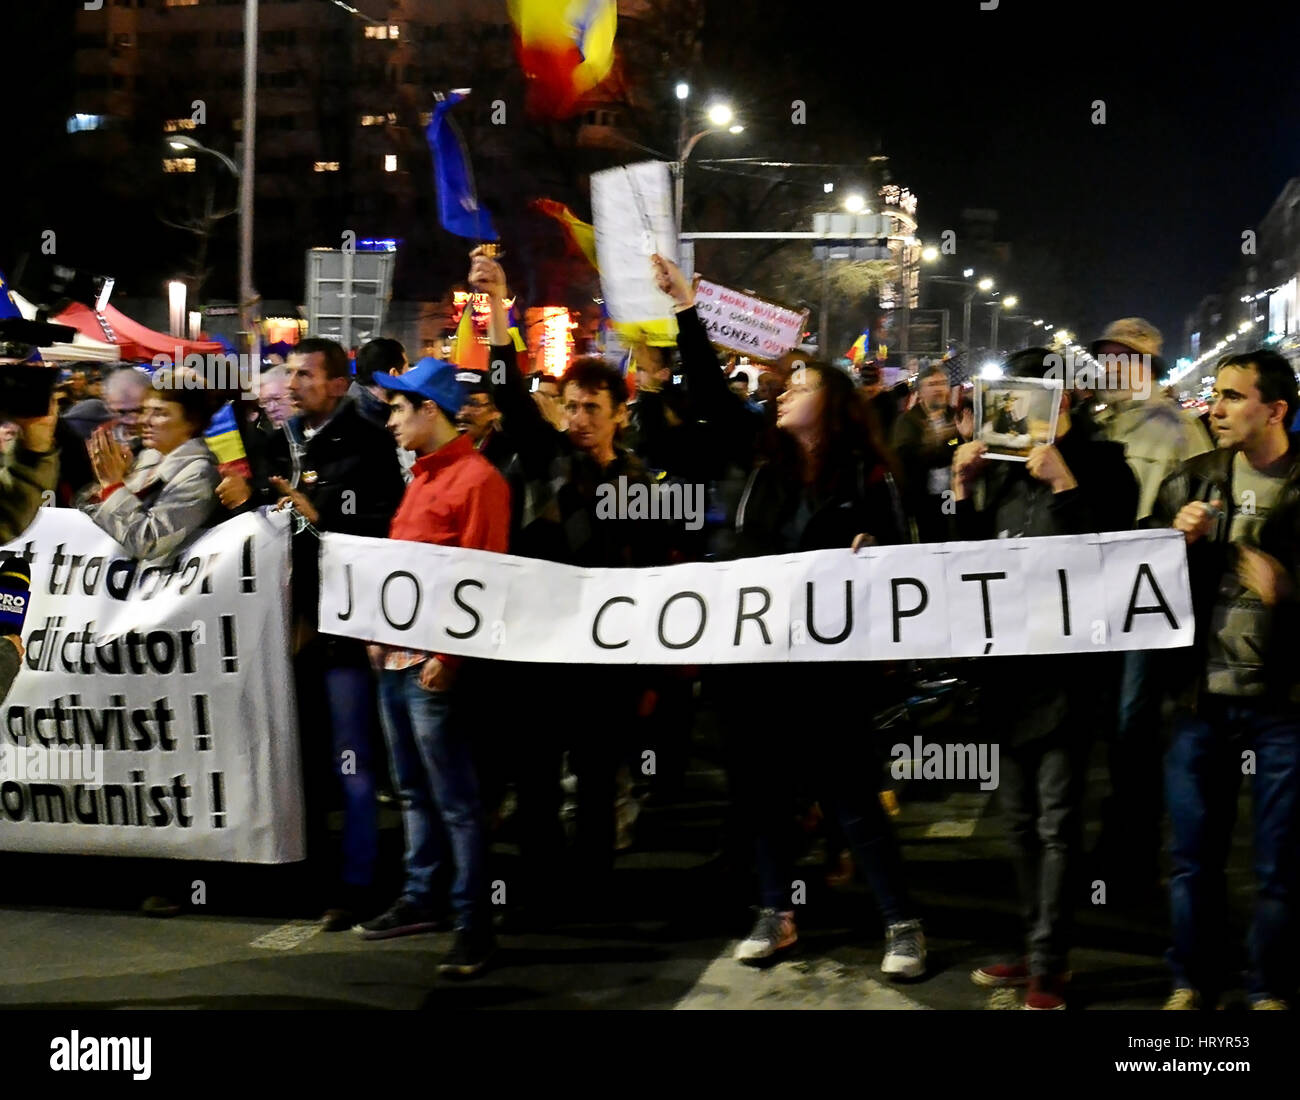 Bucharest, Romania 05th Mar, 2017 BUCHAREST, ROMANIA - 5 MARCH 2017: A fifth Sunday of anti-government protests - Stock Image